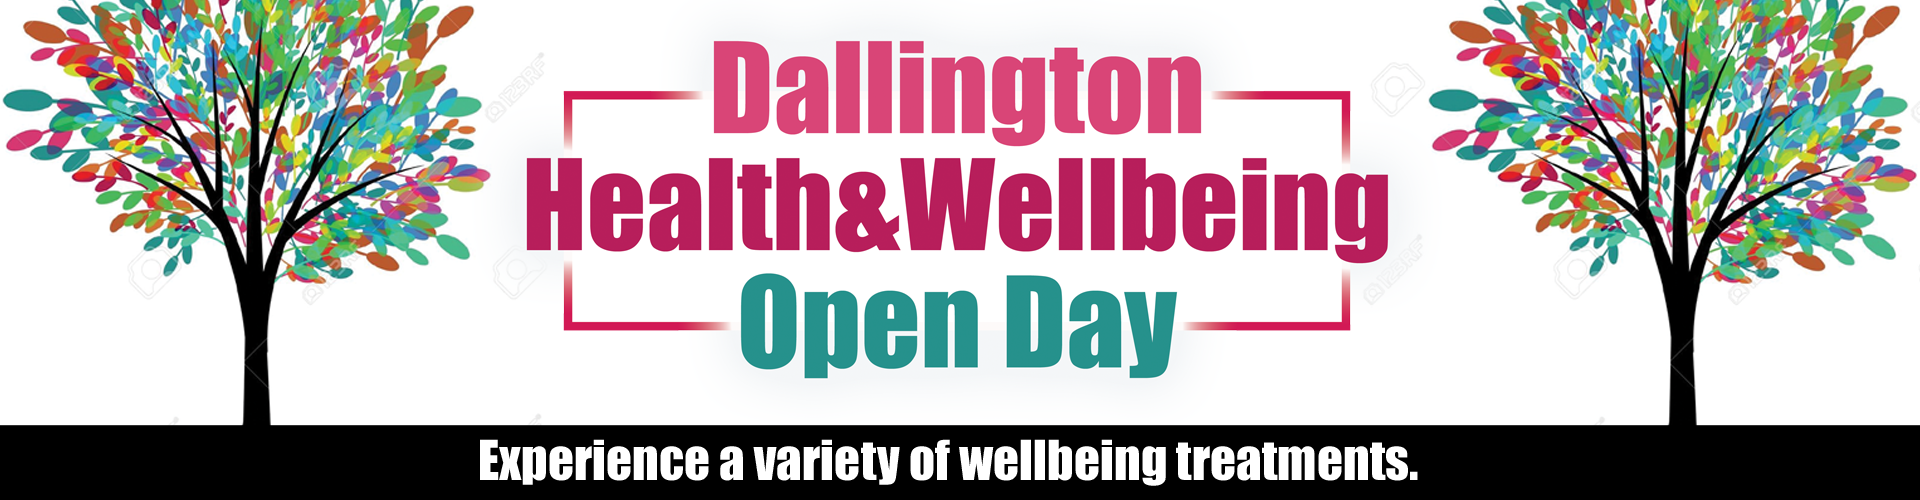 2015-08-22-Wellbeing-Open-Day-Banner-Web